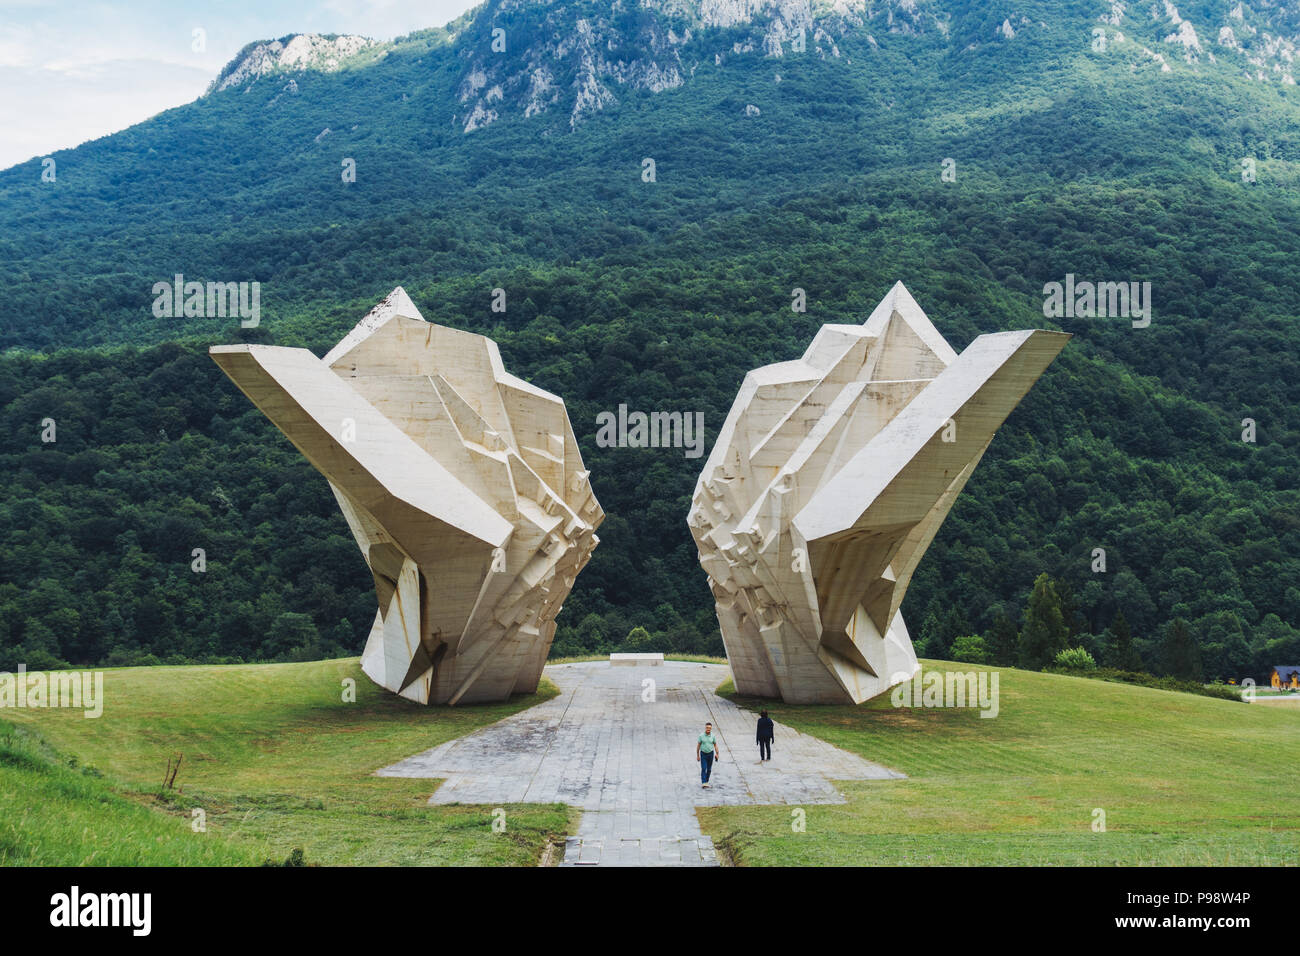 two tourists are dwarfed by the big white Tjentište spomenik (Yugoslav war memorial monument) in the Sutjeska National Park, Bosnia and Herzegovina - Stock Image